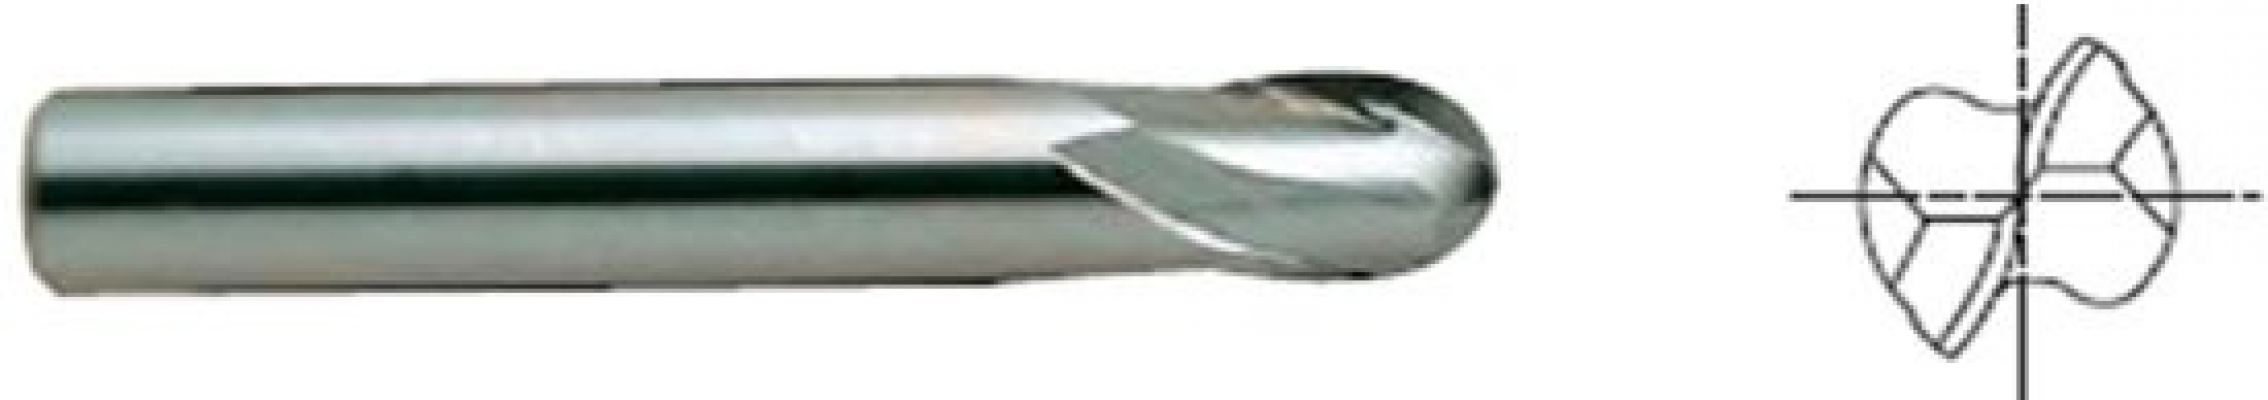 2 Flute, Carbide End Mill - Ball Nose